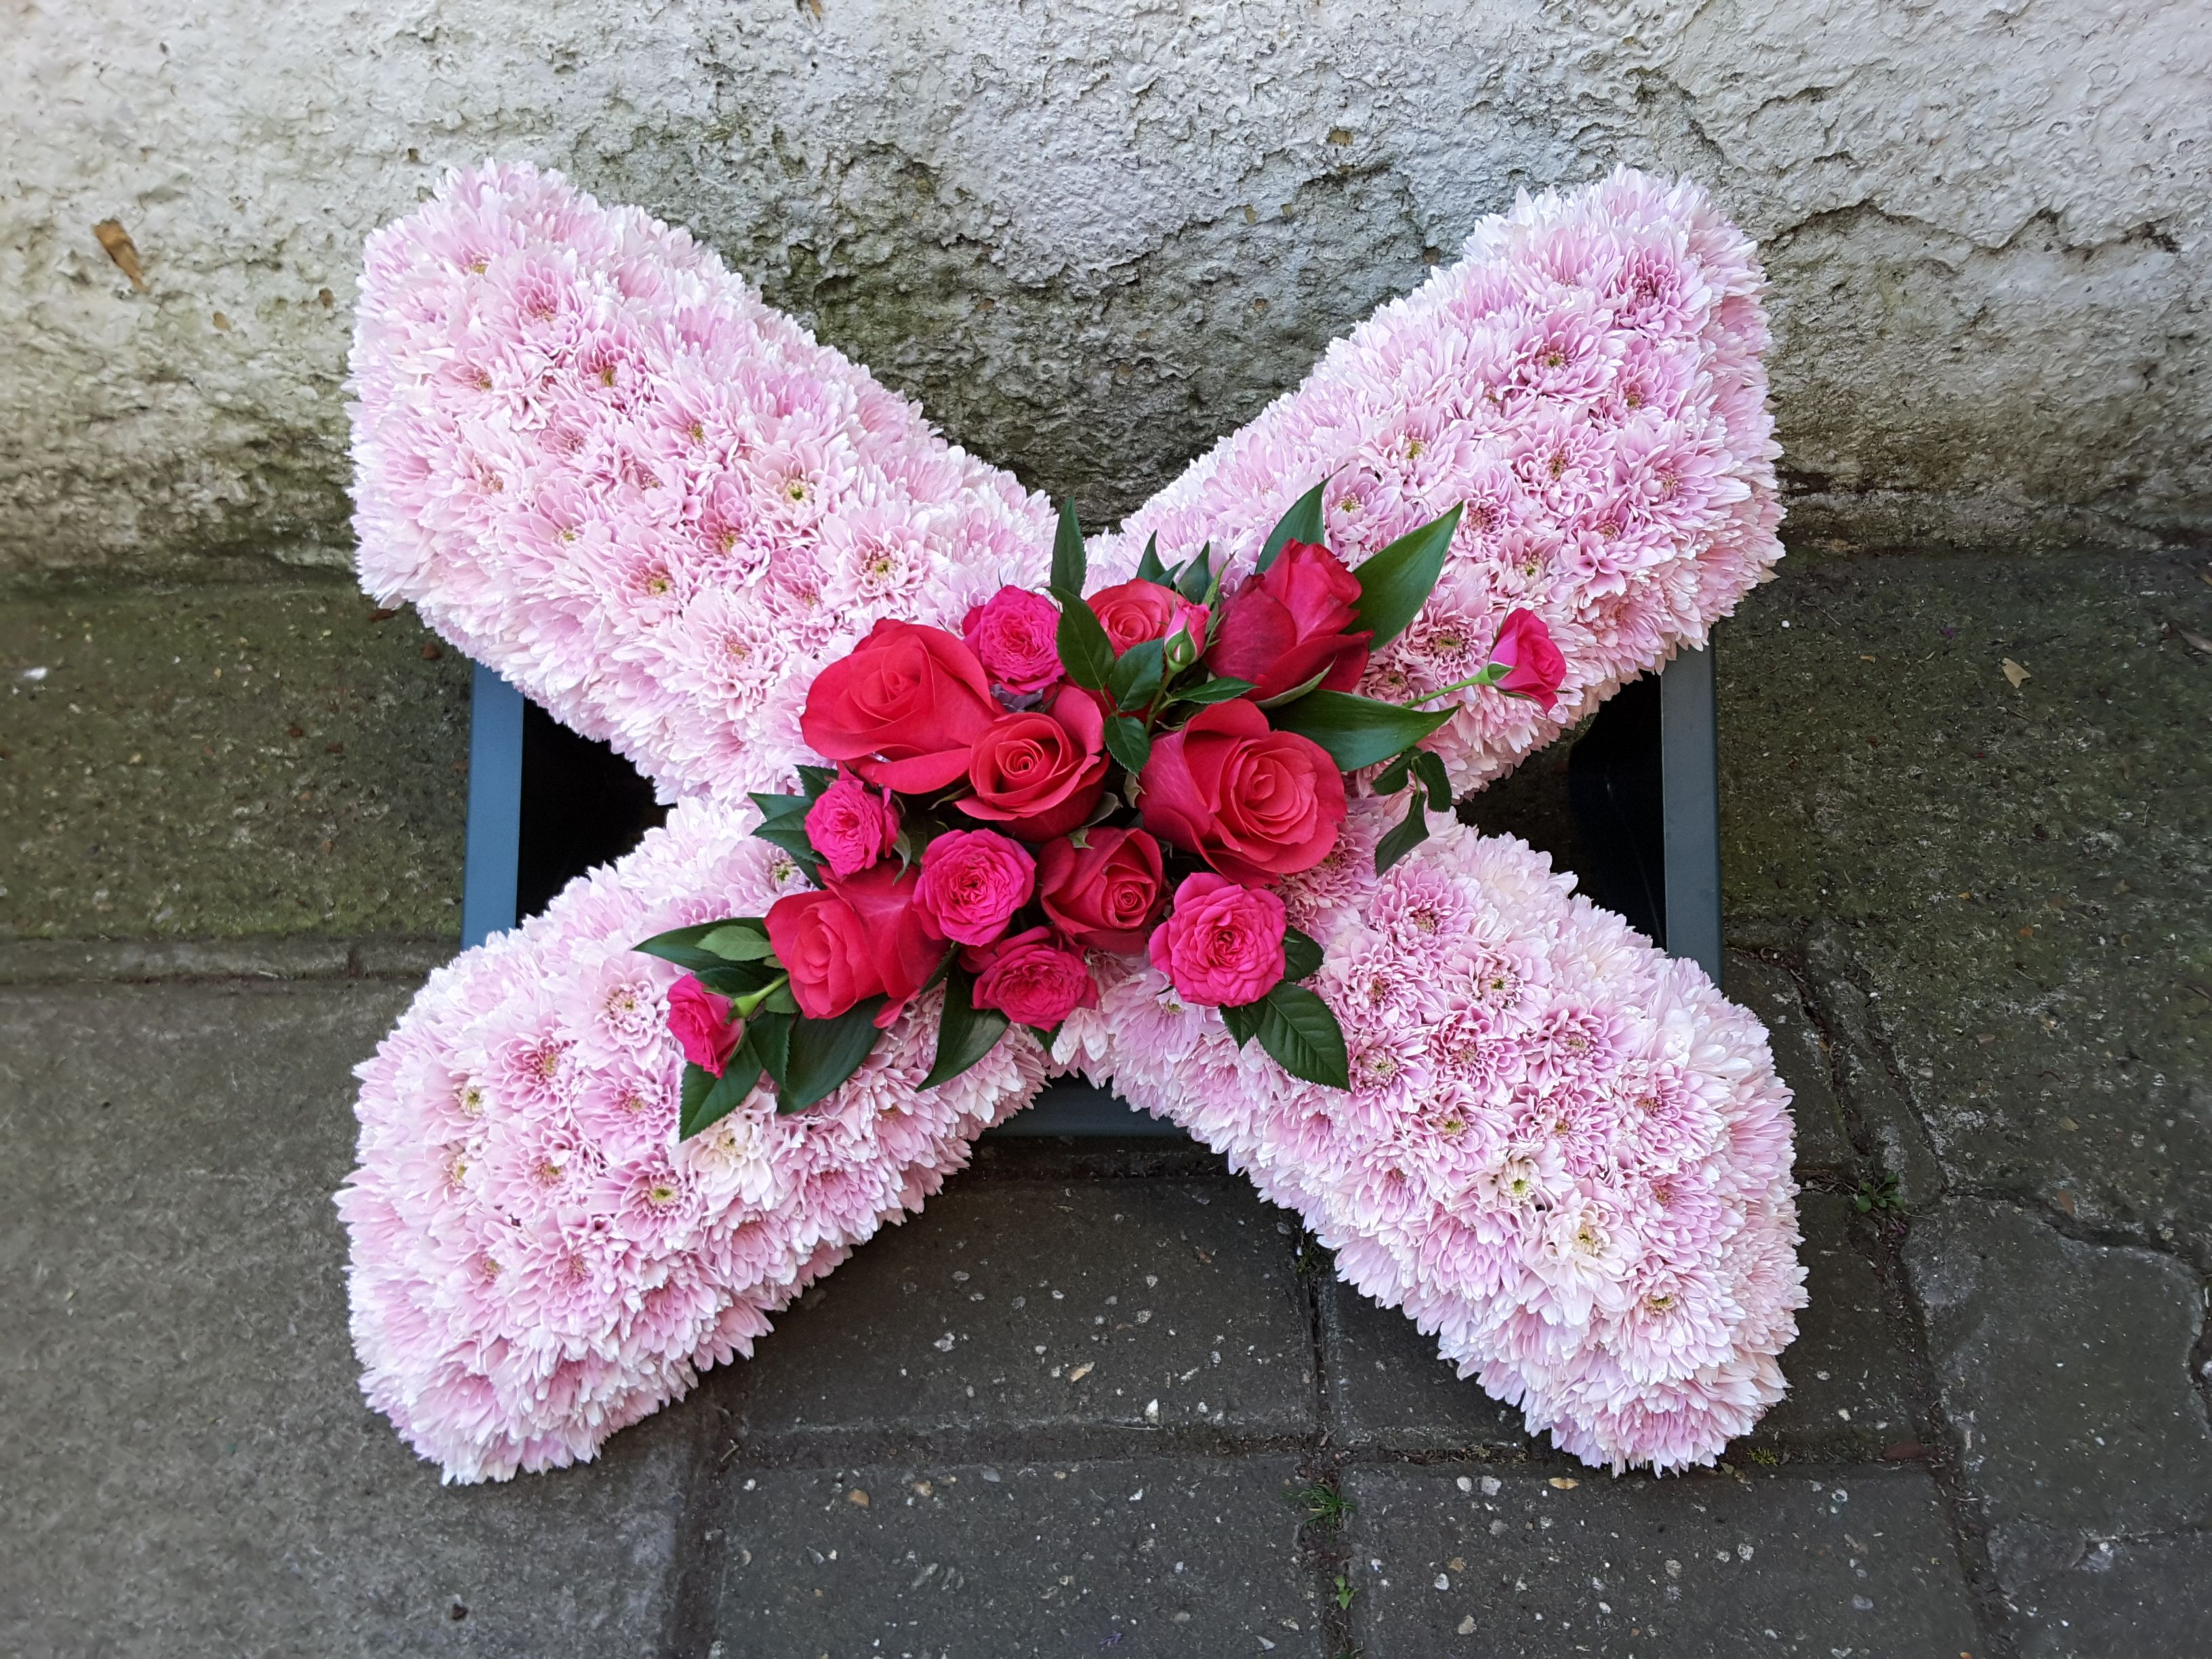 Pink based 'X' funeral tribute with a darker pink floral